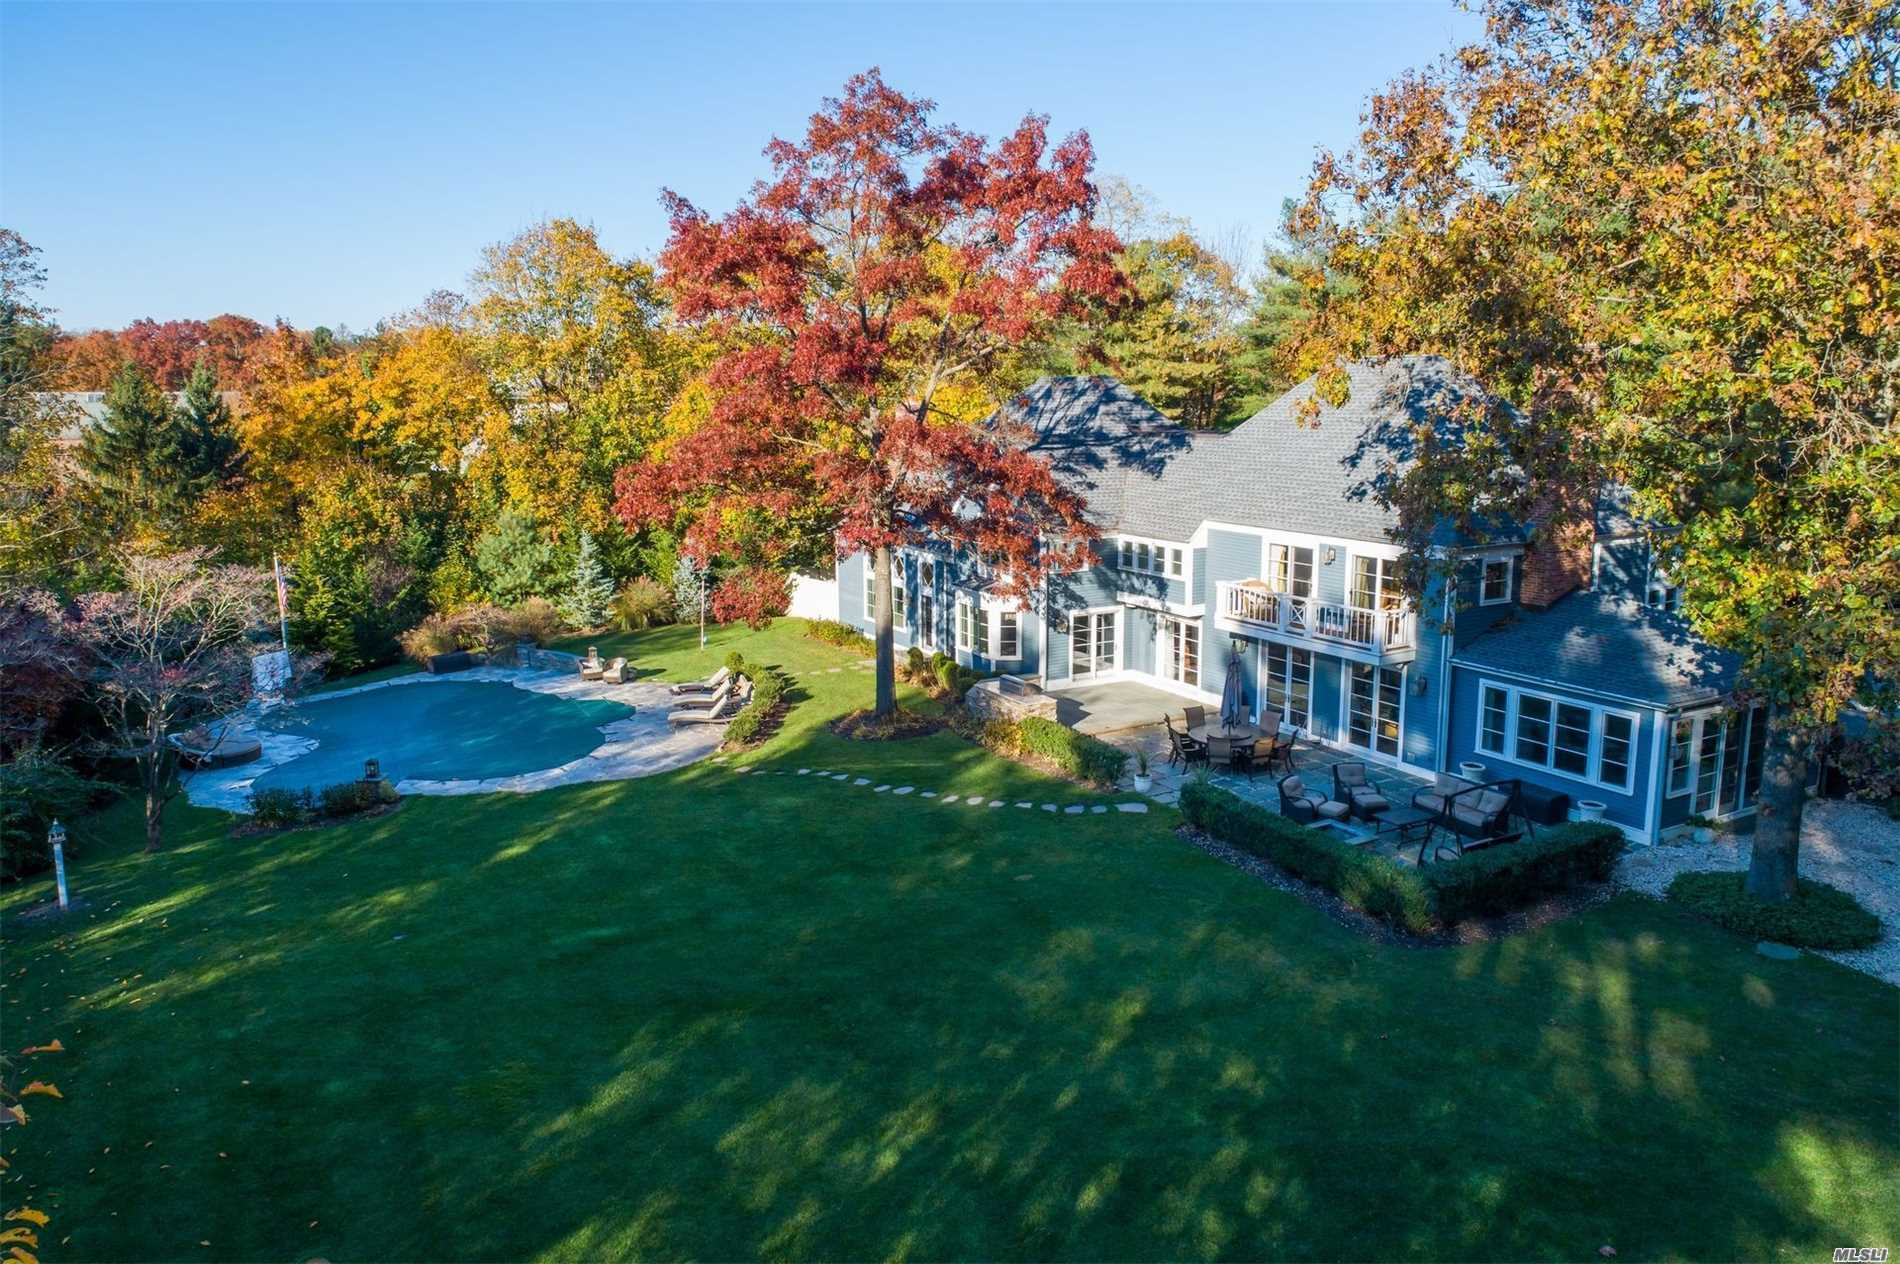 12 Cherrywood Rd - Locust Valley, New York